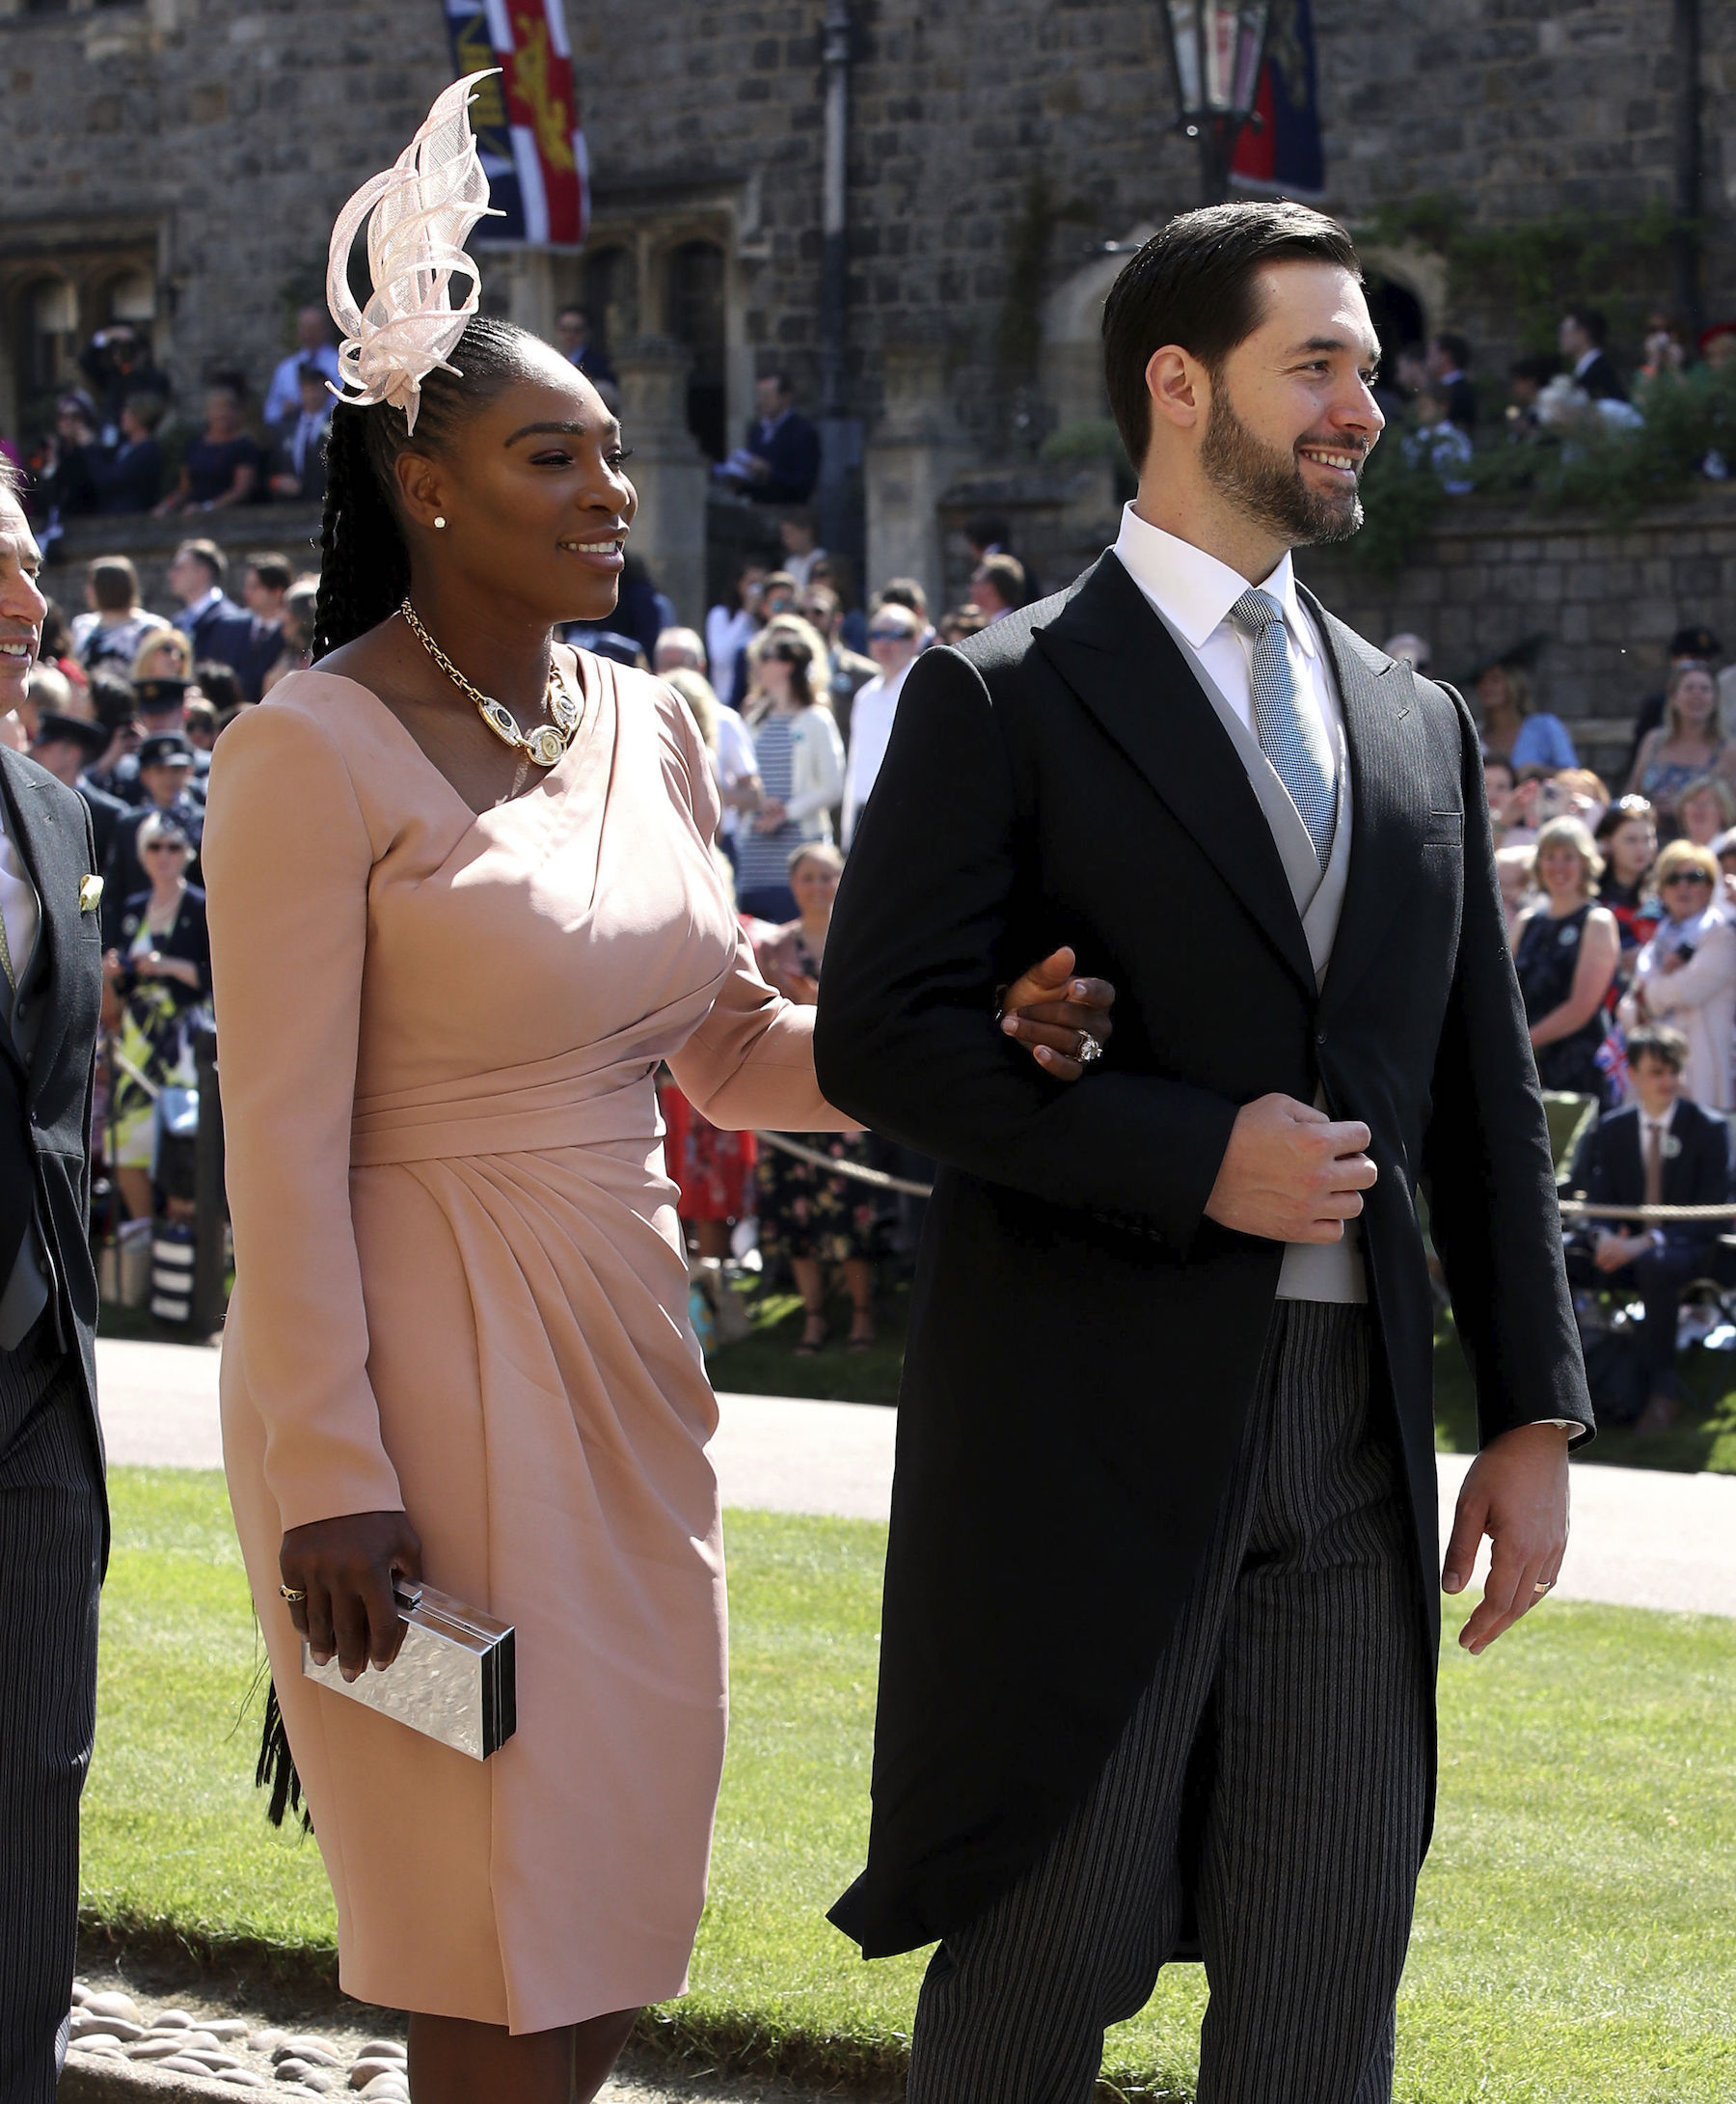 <div class='meta'><div class='origin-logo' data-origin='AP'></div><span class='caption-text' data-credit='Chris Radburn/PA Wire'>Serena Williams and Alexis Ohanian arrive at St George's Chapel at Windsor Castle for the wedding of Meghan Markle and Prince Harry.</span></div>